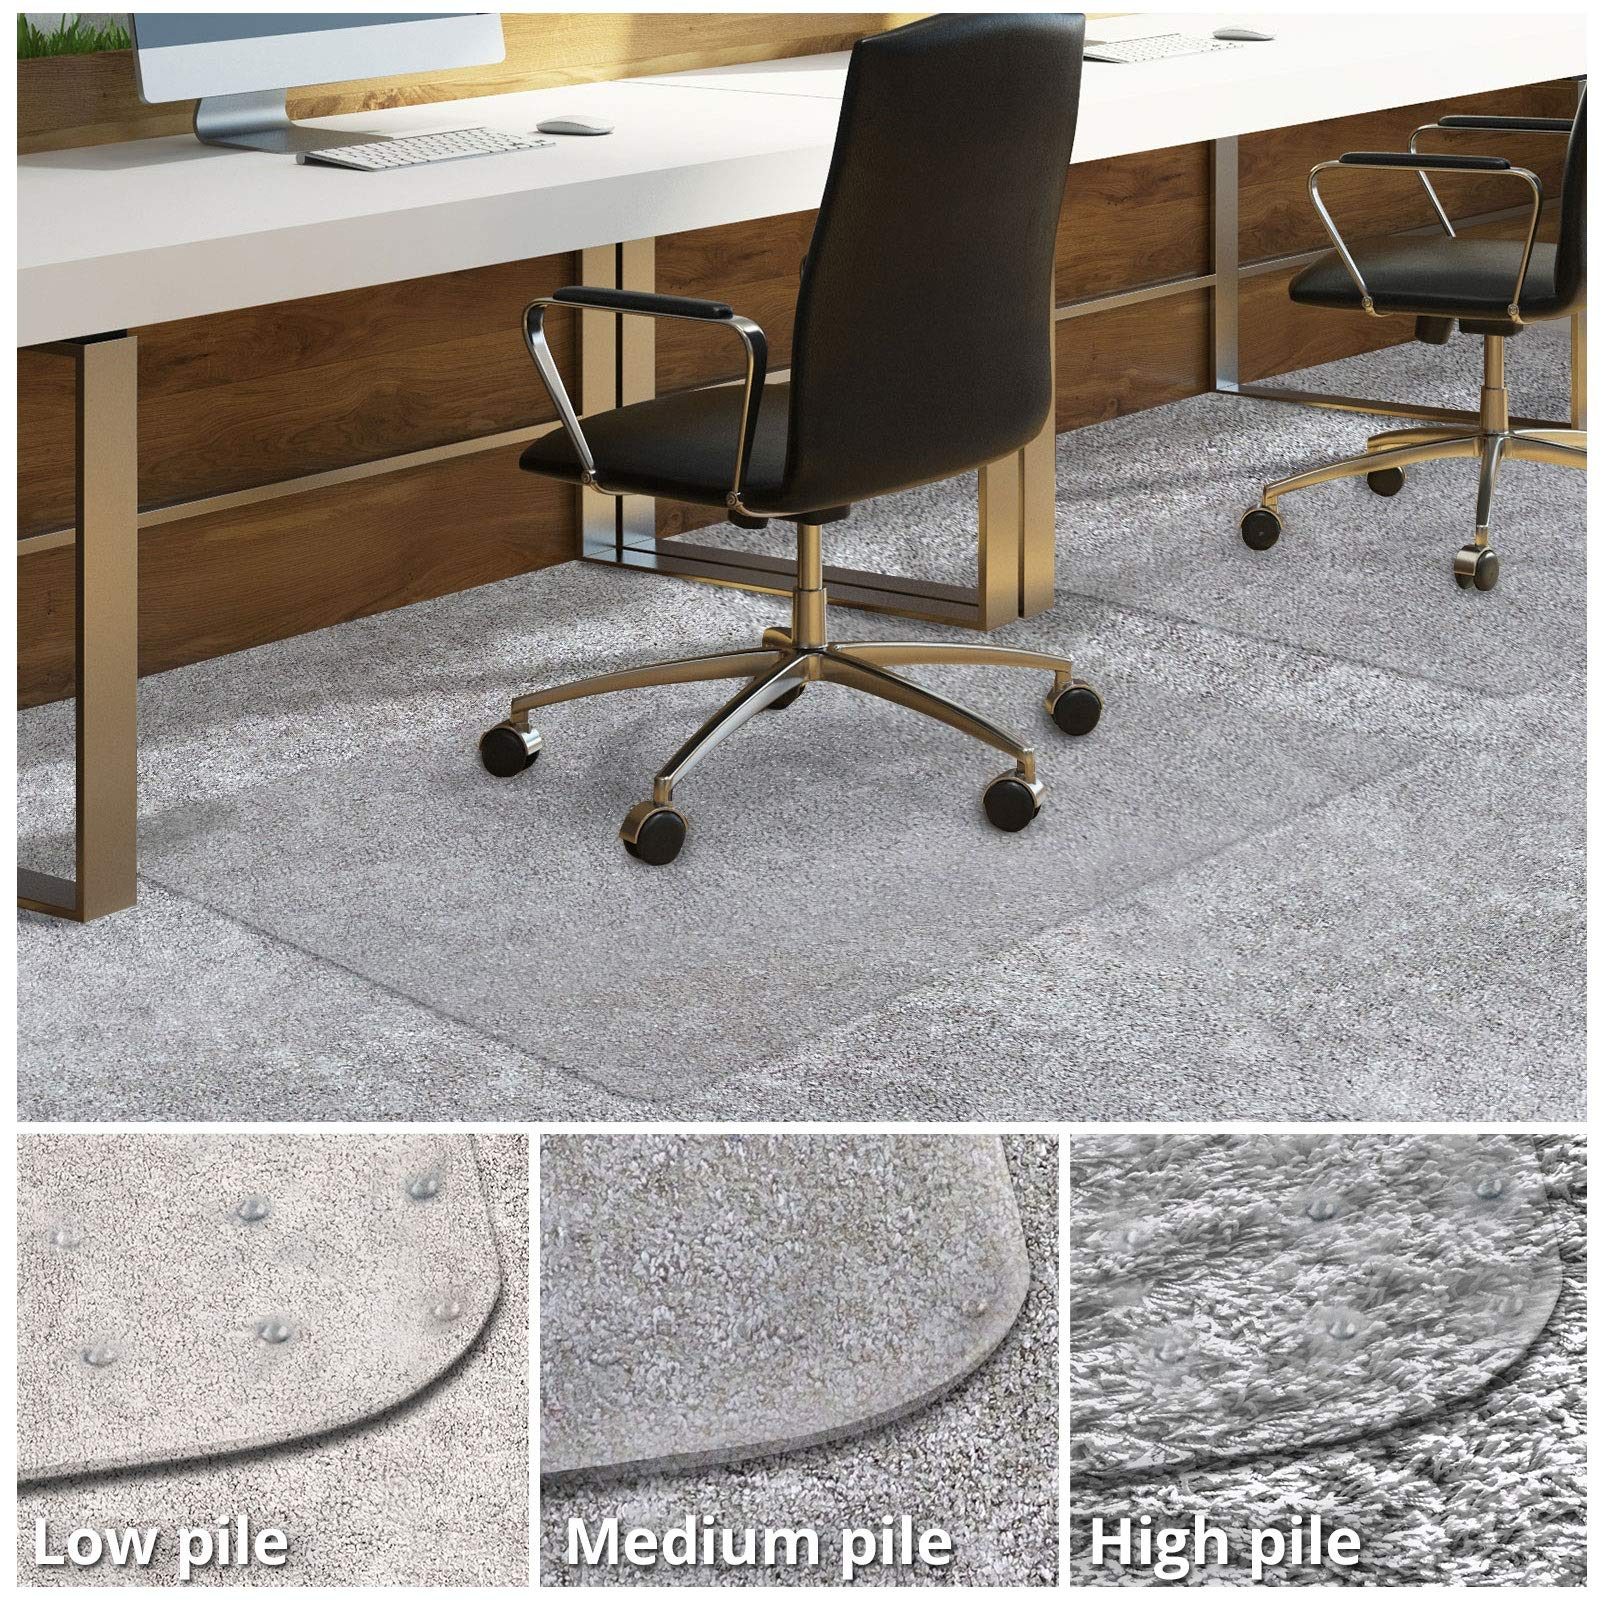 Office Chair Mat for Carpeted Floors | Desk Chair Mat for Carpet | Clear PVC Mat in Different Thicknesses and Sizes for Every Pile Type | Medium-Pile 30''x48''